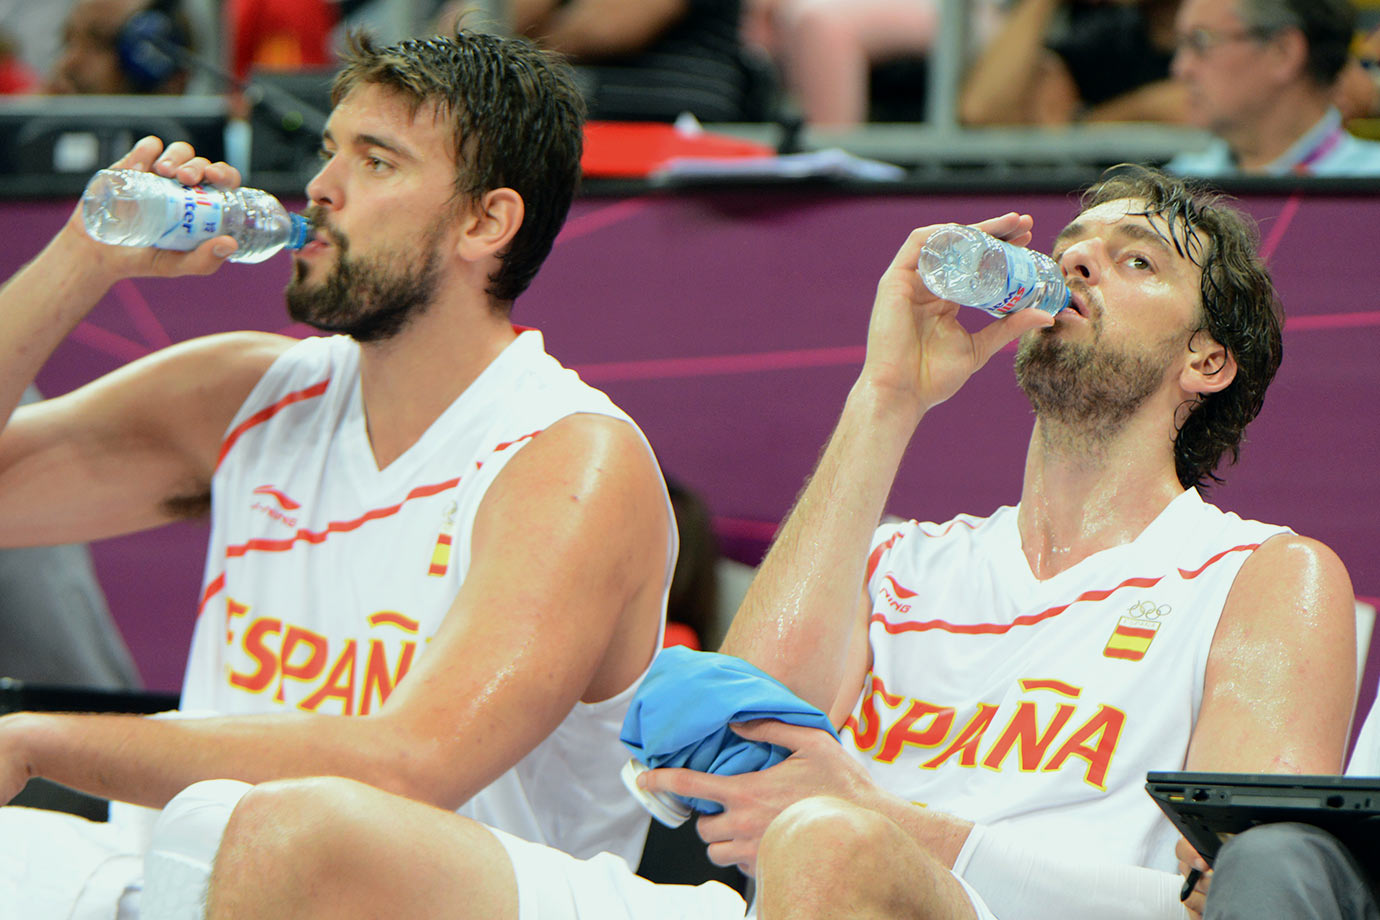 London Summer Olympics — Spain vs. Great Britain